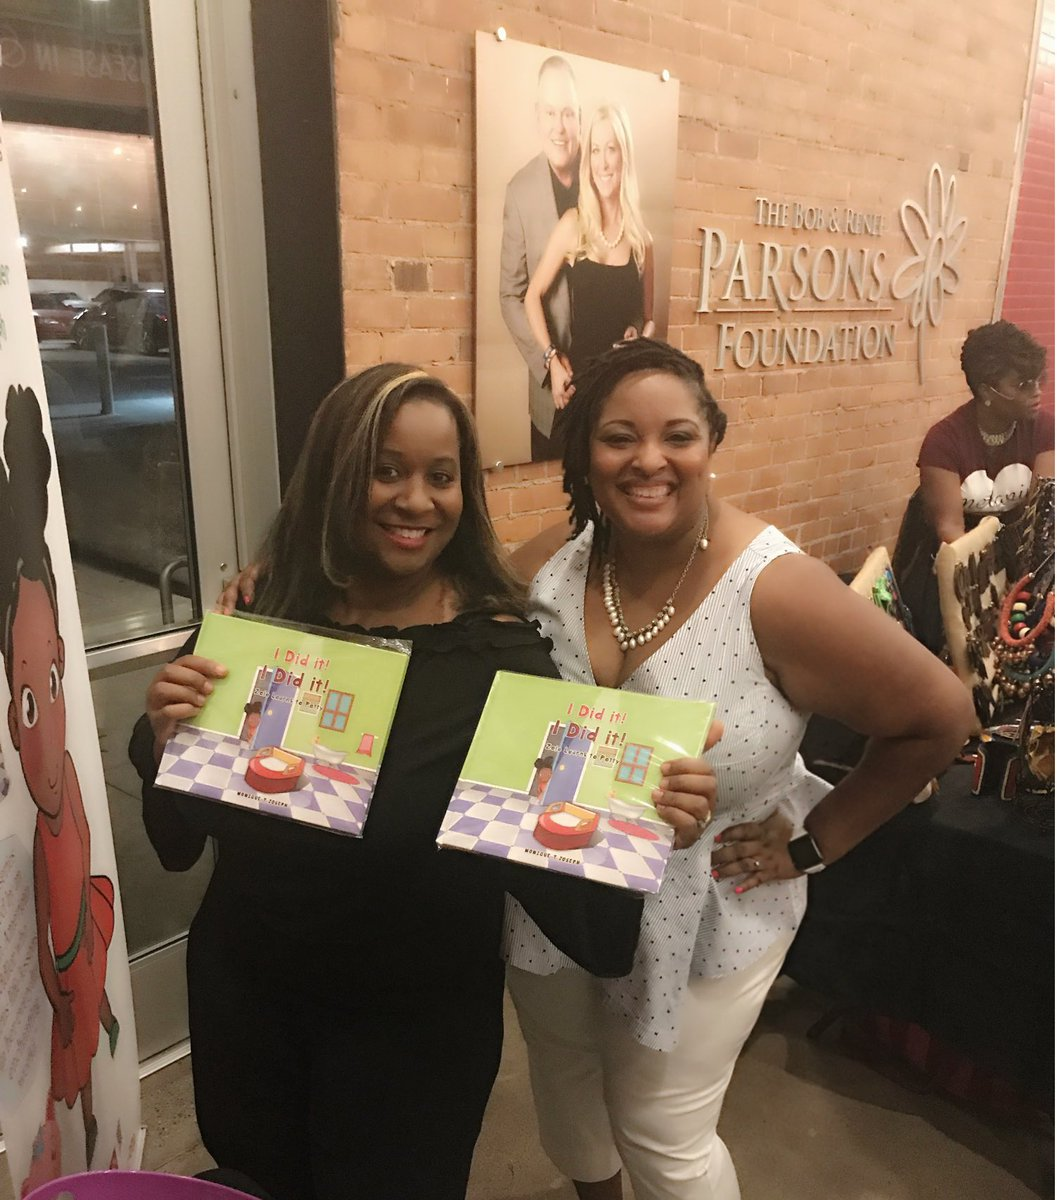 We had such an amazing time meeting all the people who came out to support! Thanks #Arizona #booktour #MemorialDay #kids #BlackTwitter #pr <br>http://pic.twitter.com/0crPKvzlC6